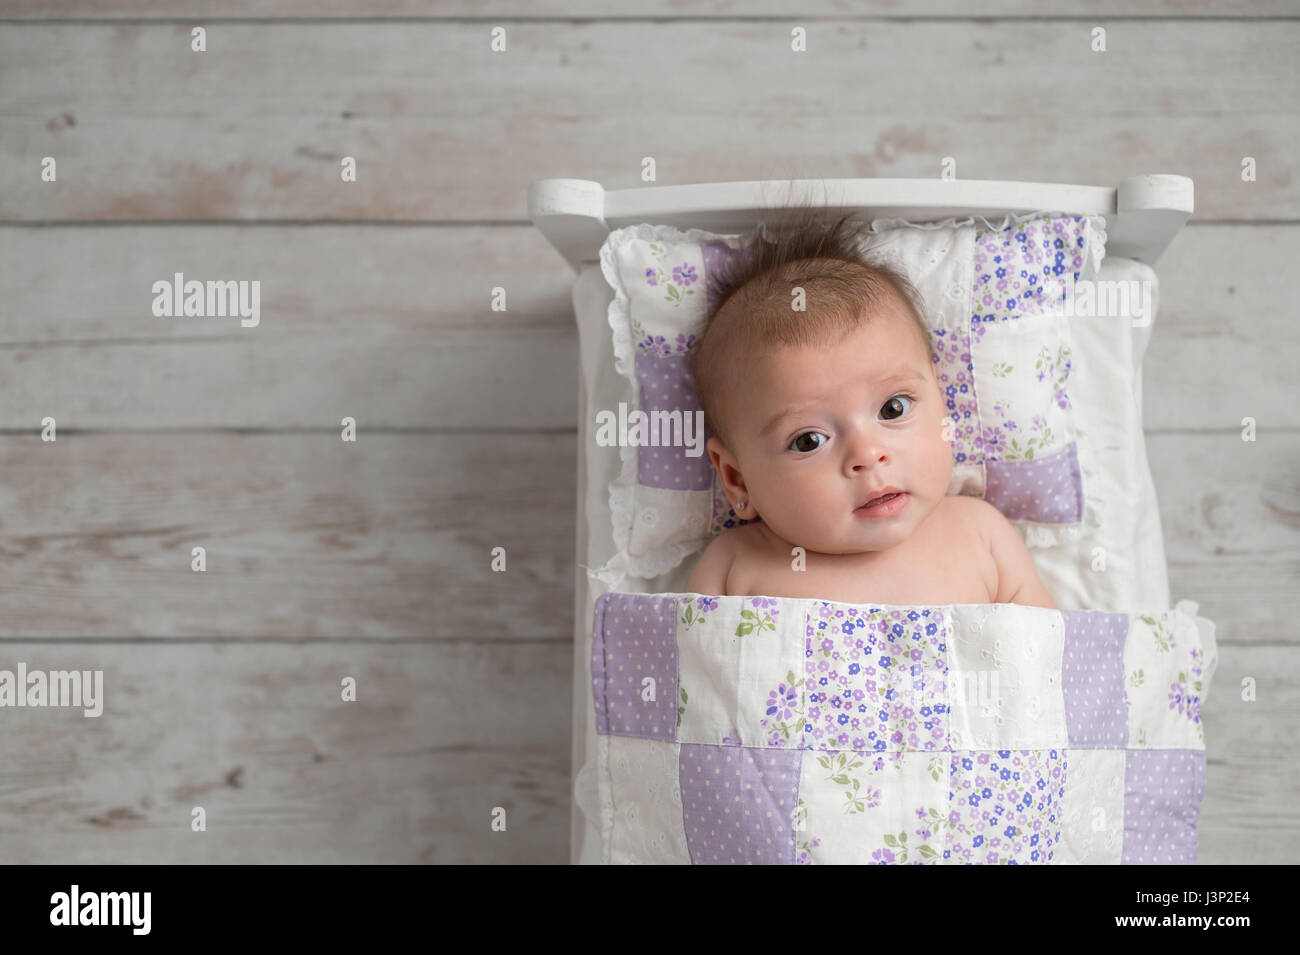 An overhead shot of a four month old, alert, baby girl. She is lying in a tiny bed and looking up at the camera. - Stock Image